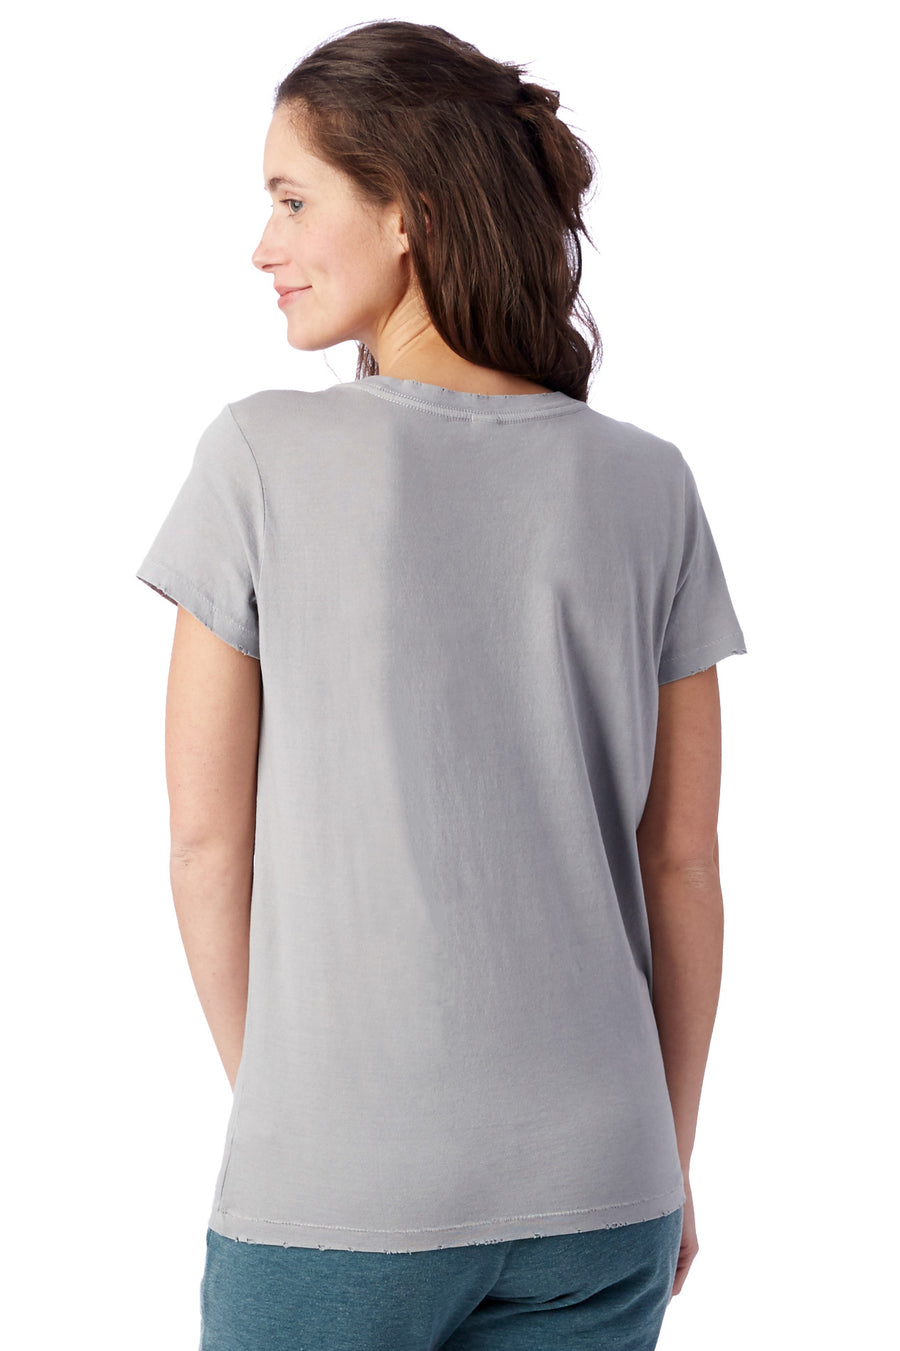 Vintage Garment Dyed Distressed T-Shirt - Grey Pigment - Pavilion